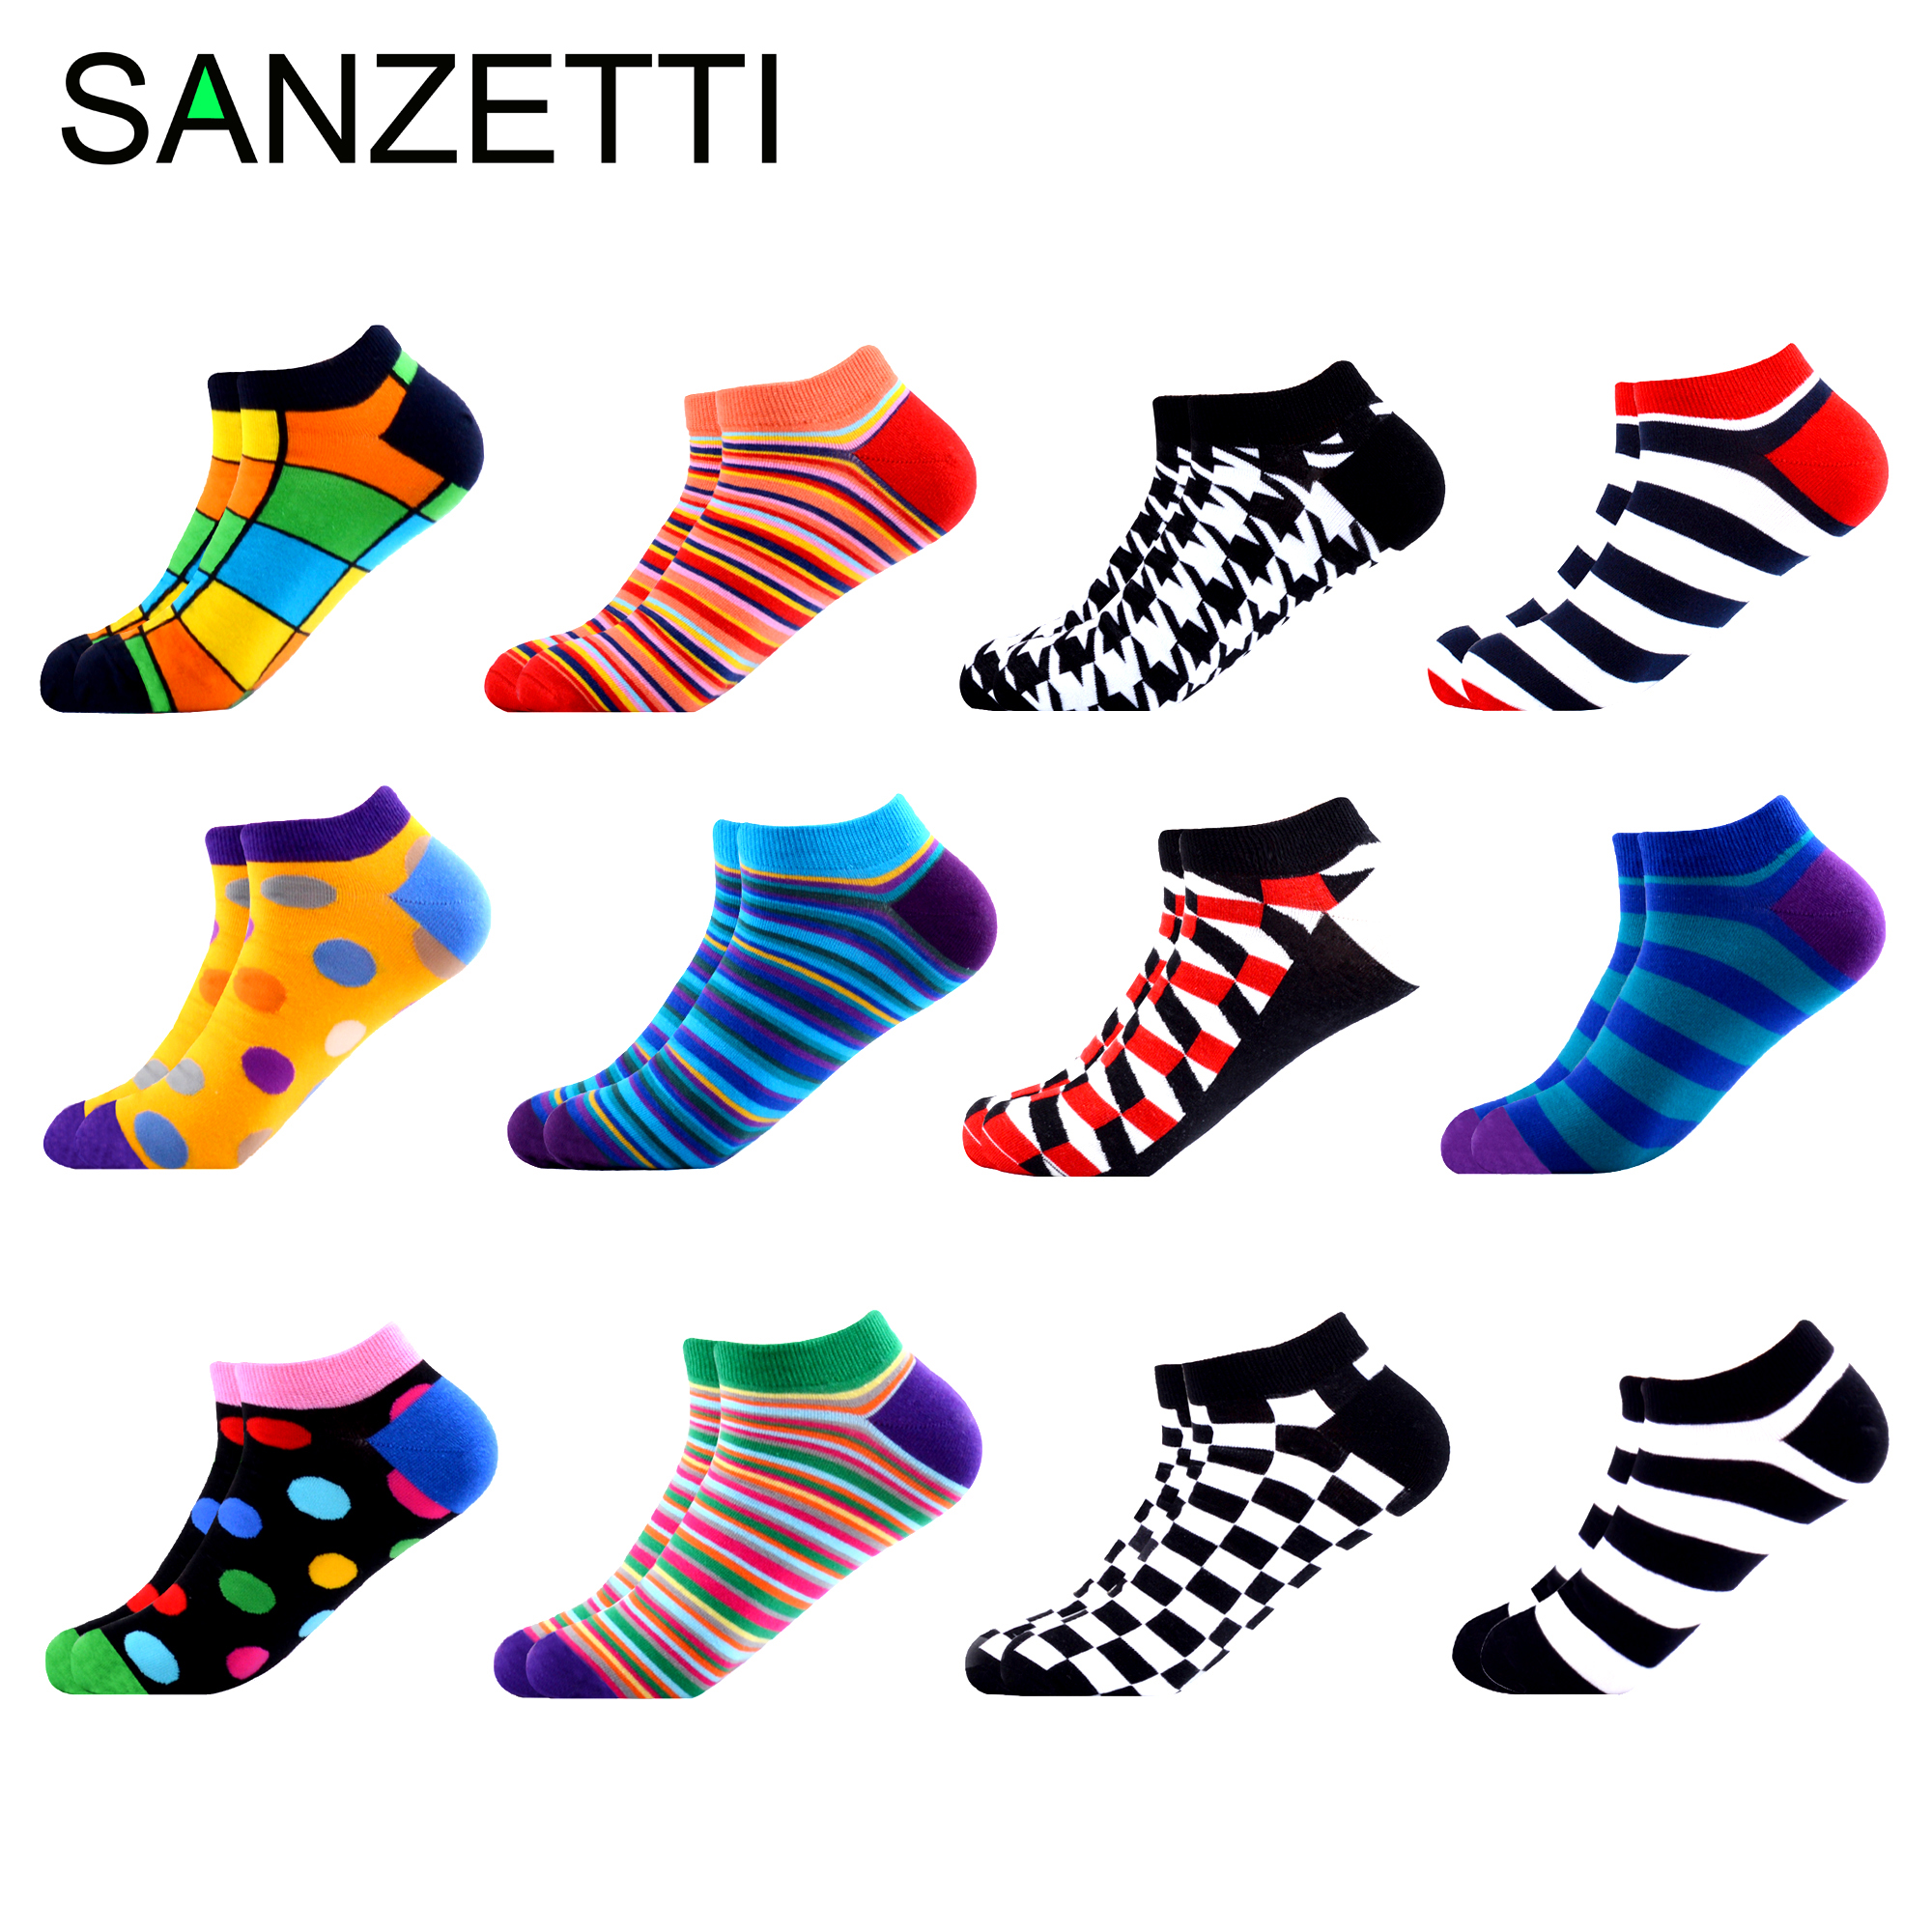 SANZETTI 12 Pairs/Lot Men Summer Happy Combed Cotton   Socks   Casual Plaid Striped Dot Design   Socks   Funny Colorful Dress Gift   Socks